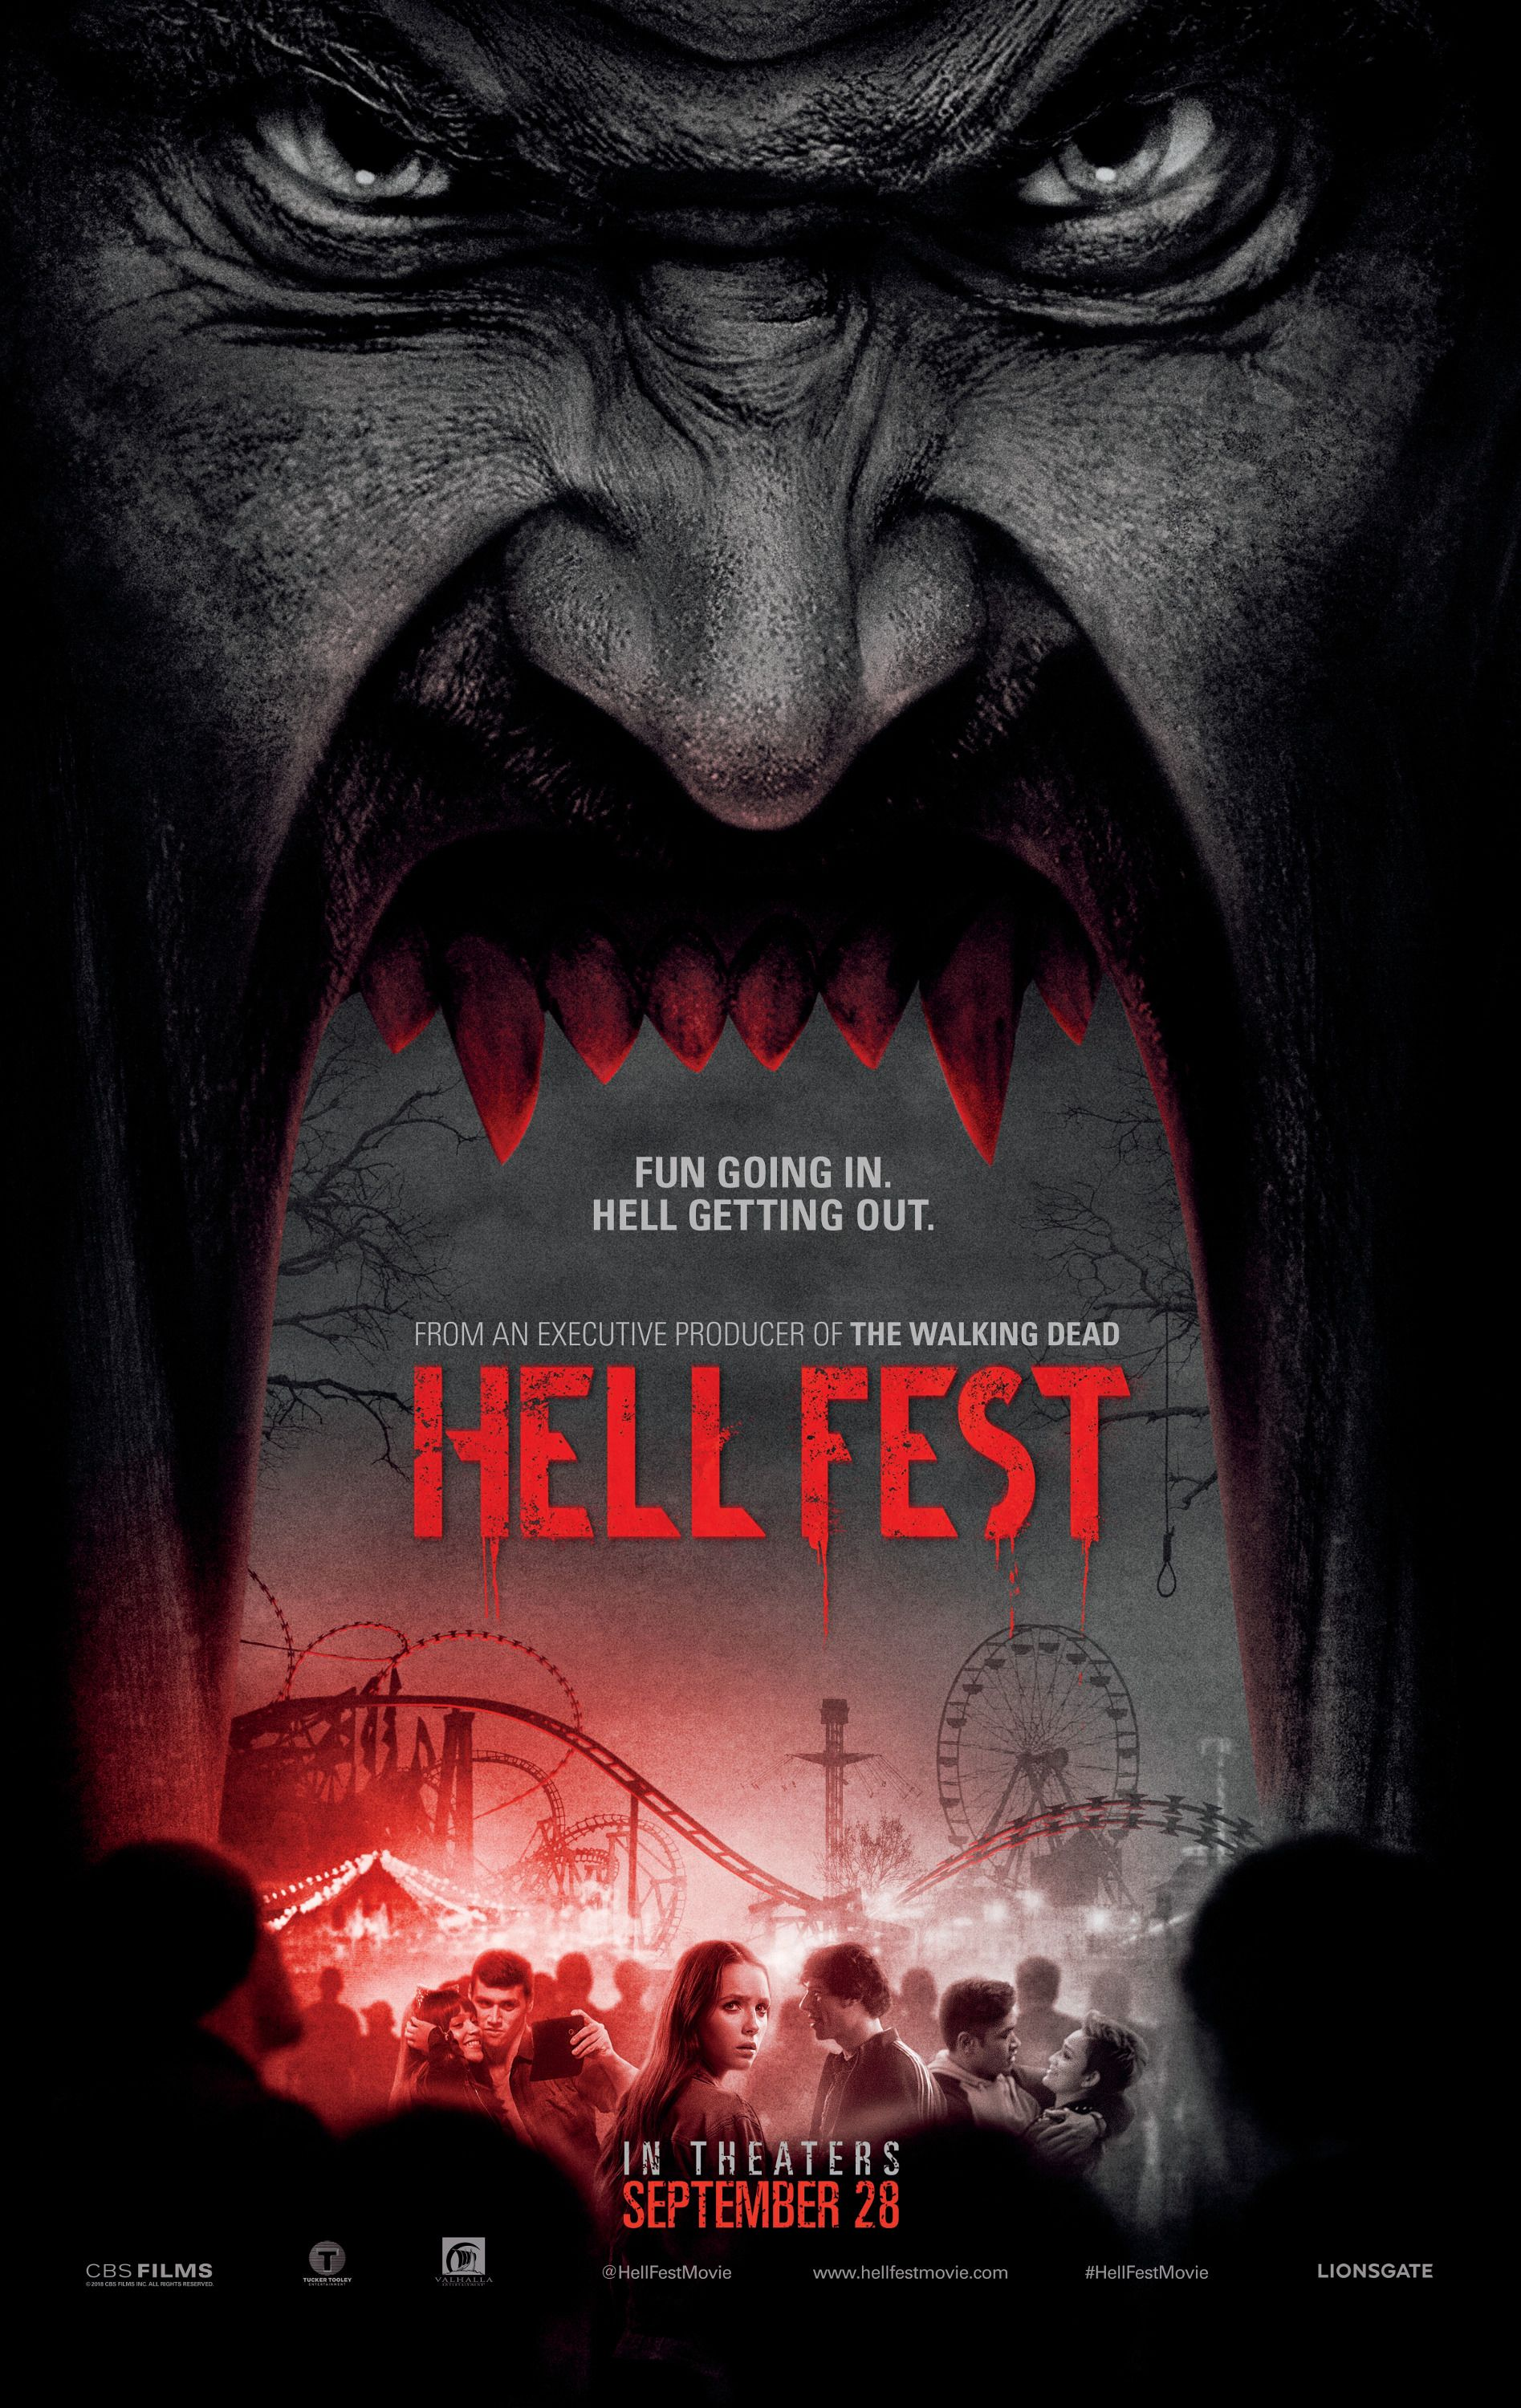 Arte Tv Hellfest 2017 Hell Fest 2018 Movie Full Movies Download Movies To Watch